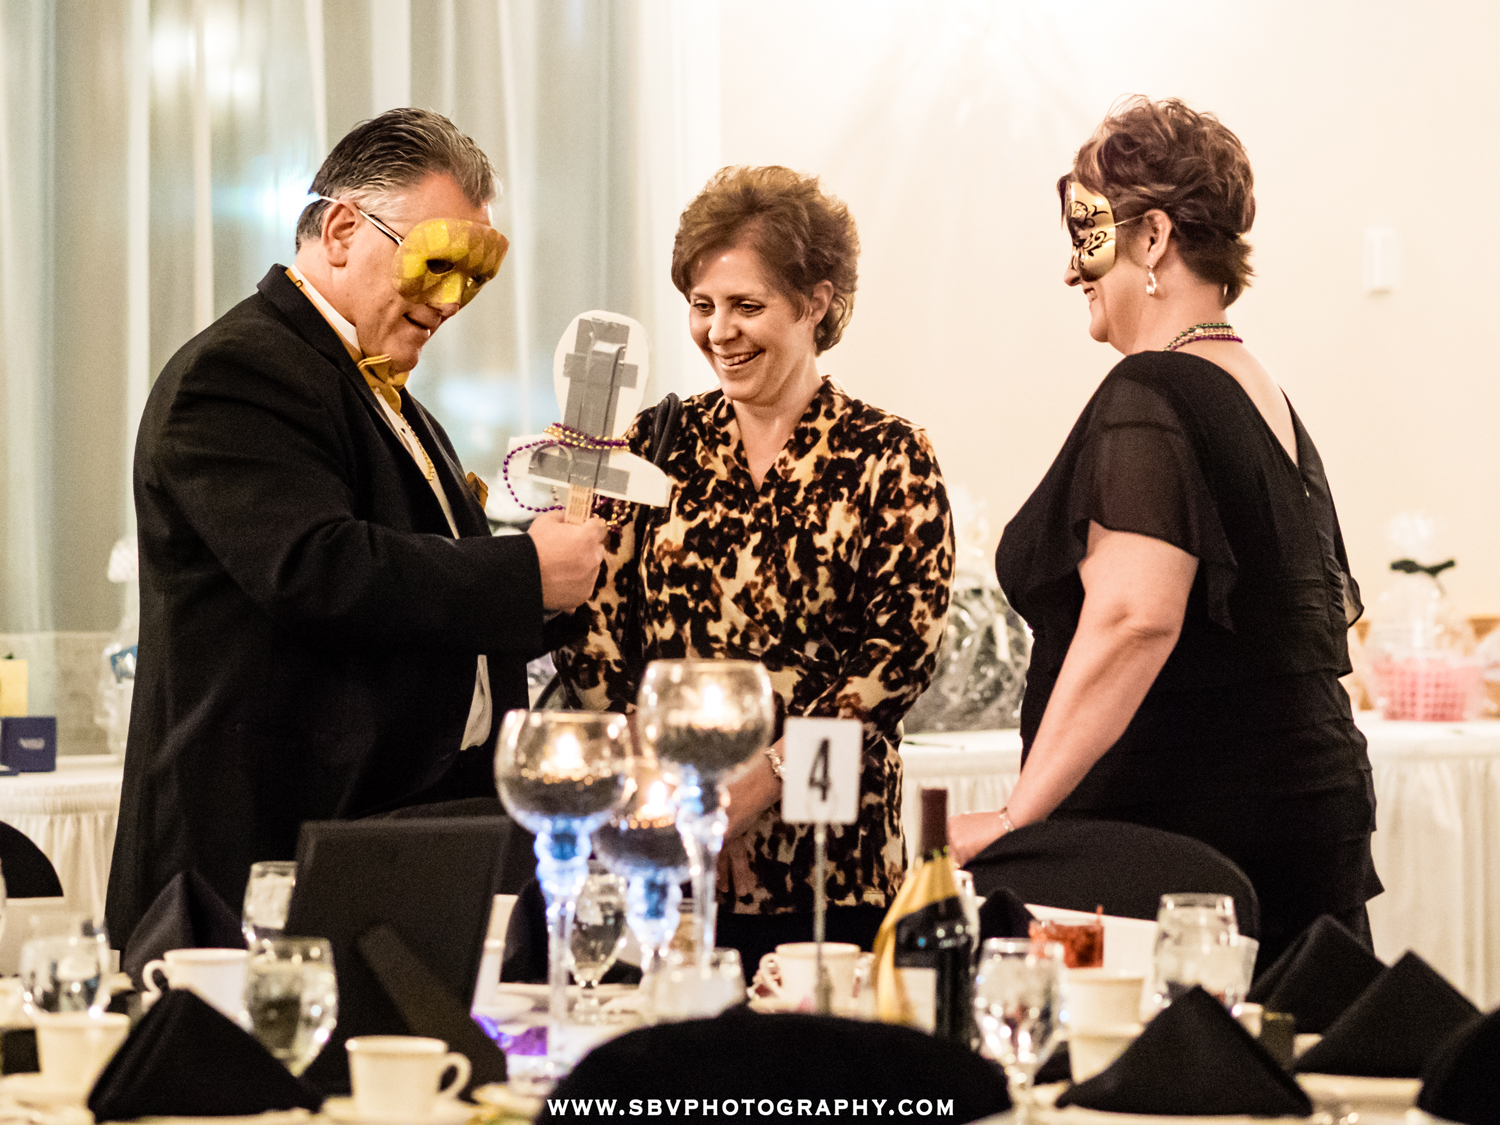 Guests at a Masquerade Ball share a laugh as they show each other their costume props.